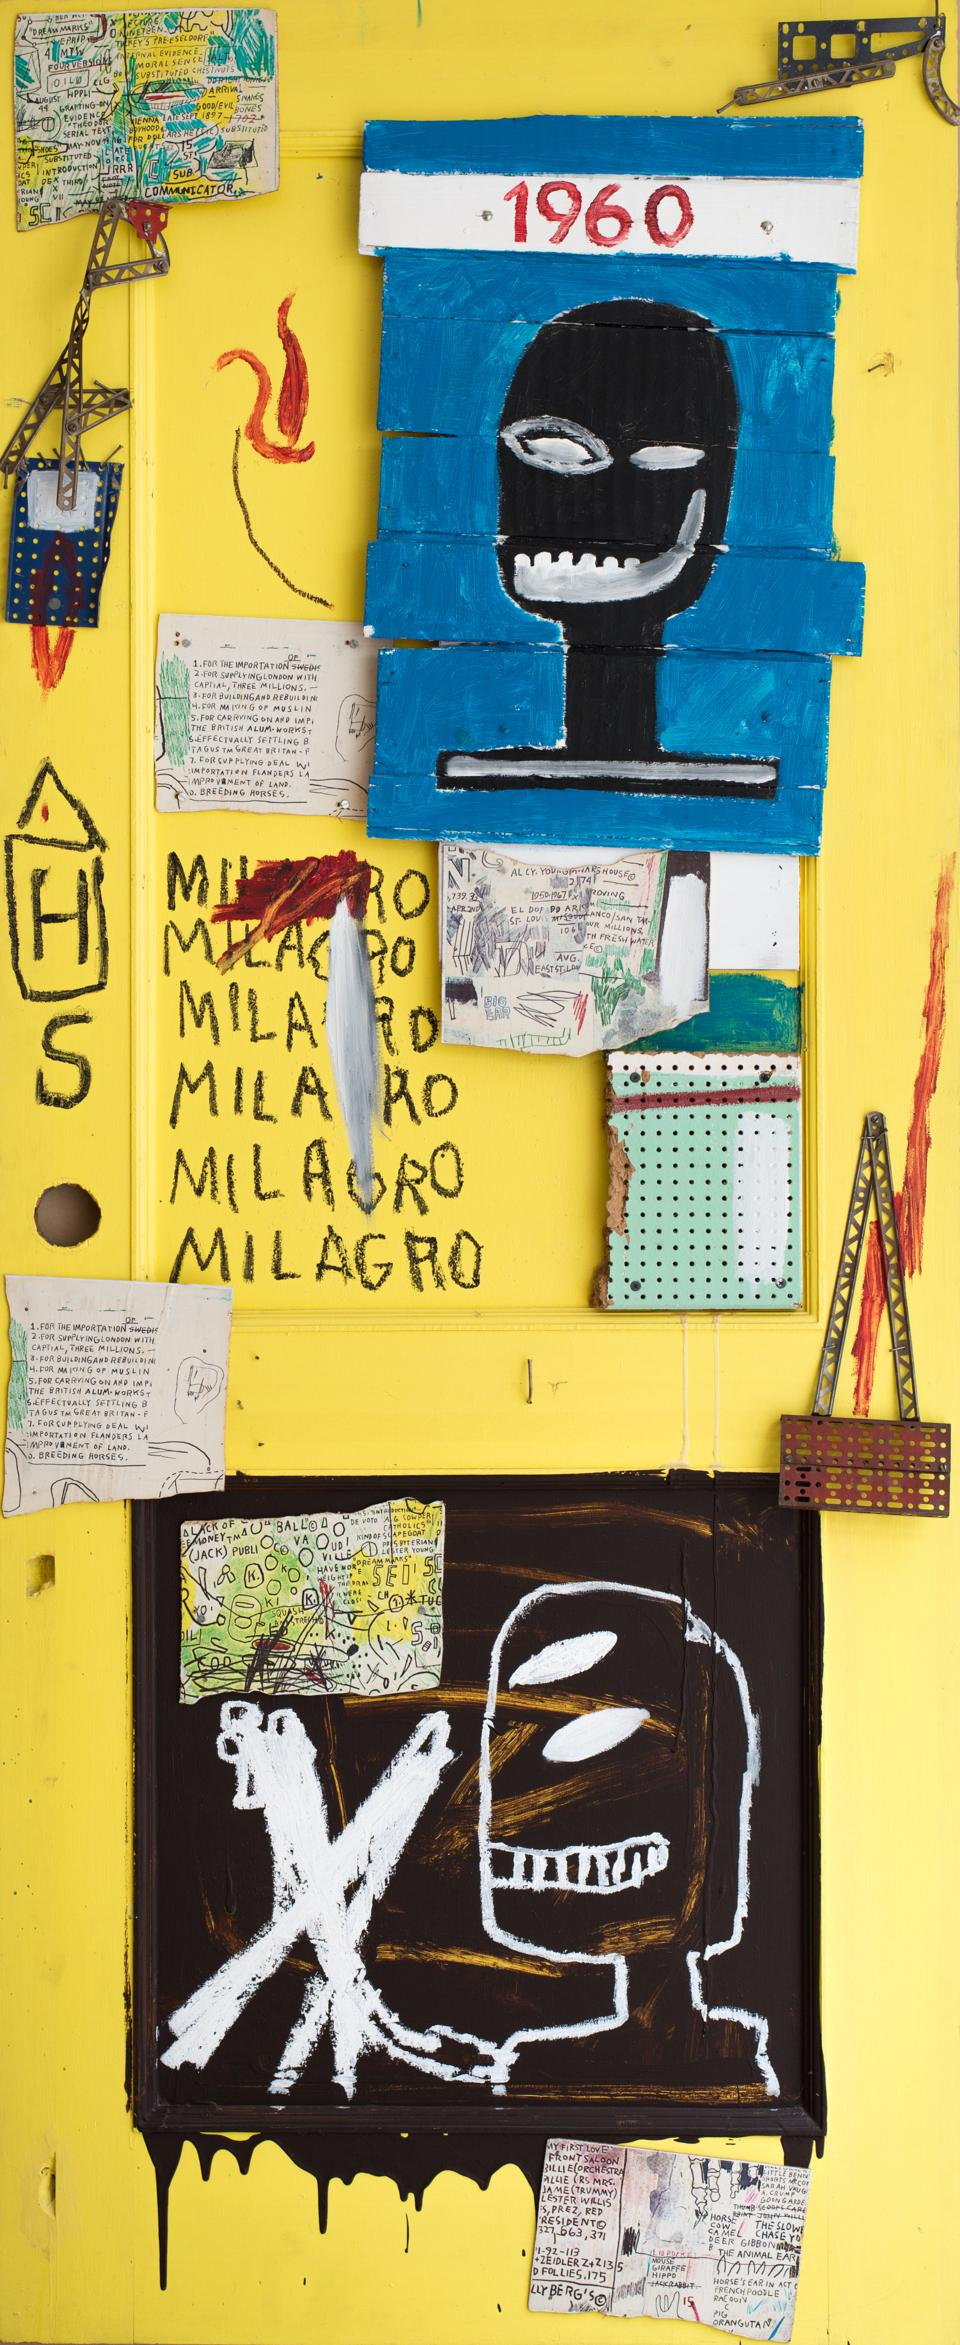 Jean-Michel Basquiat (American, 1960-1988), 'Yellow Door,' 1985. Acrylic and oil stick on collaged wood door. Collage elements: color xerox paper on pegboard, nails and metal hinges. 84 x 36 inches. Private Collection.